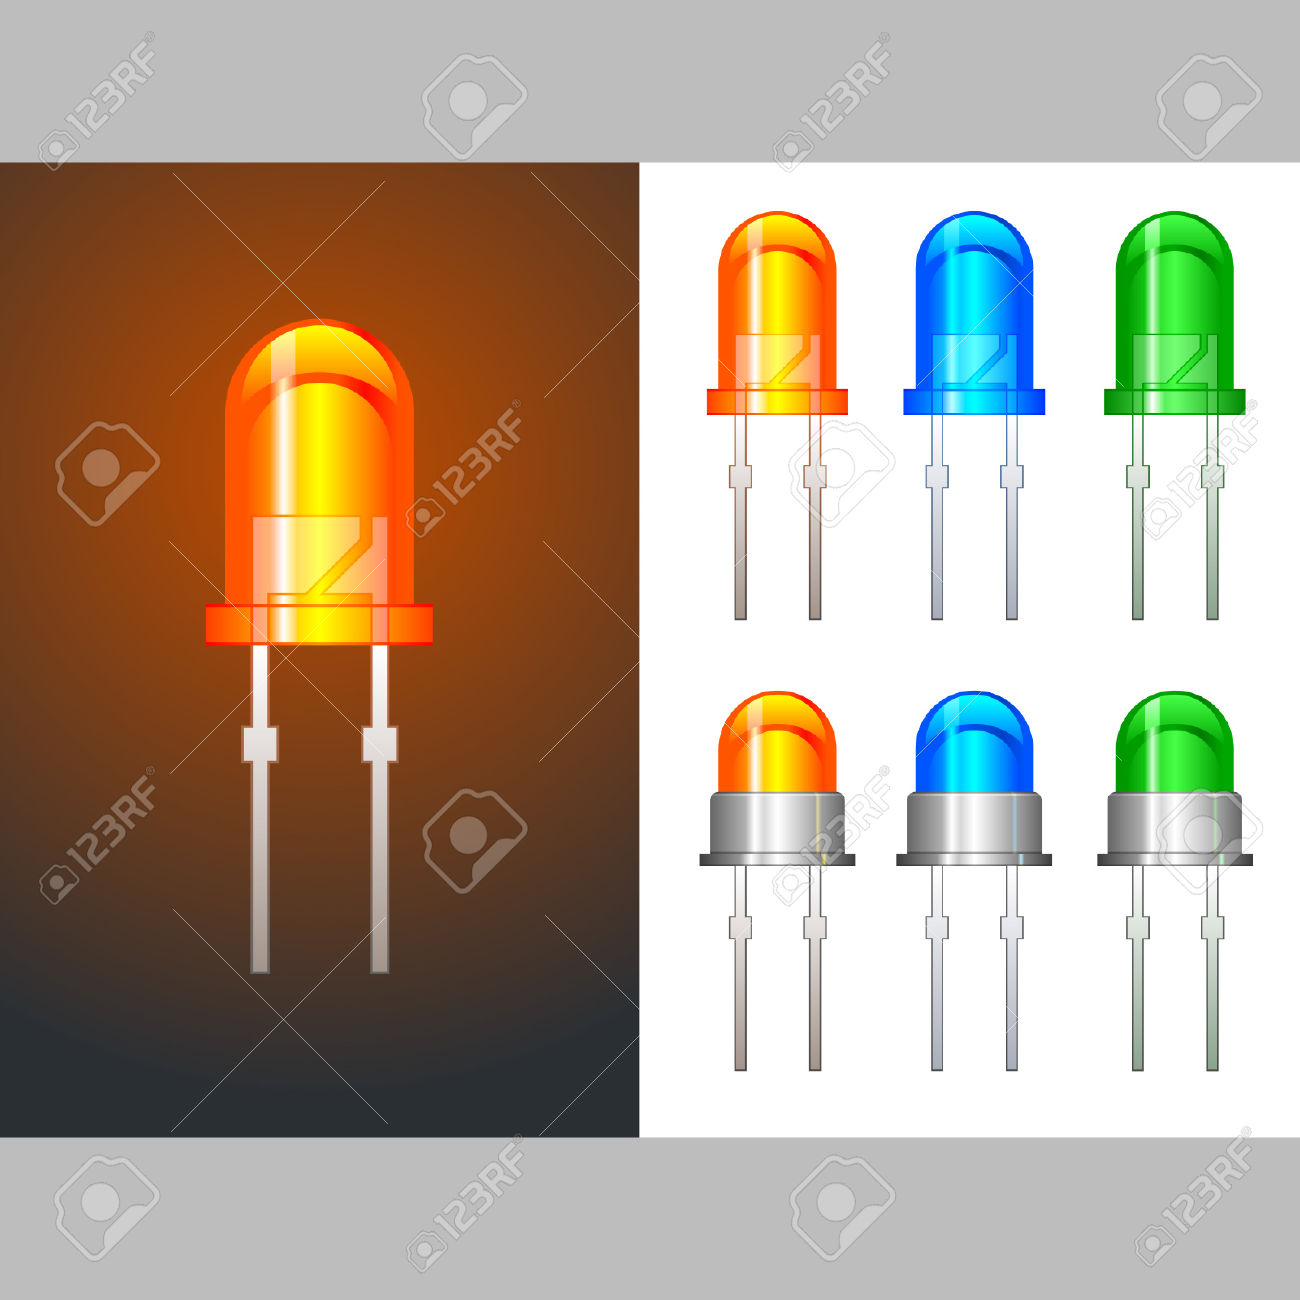 Six Colored Light Emitting Diodes In Glass And Metallic Variants.